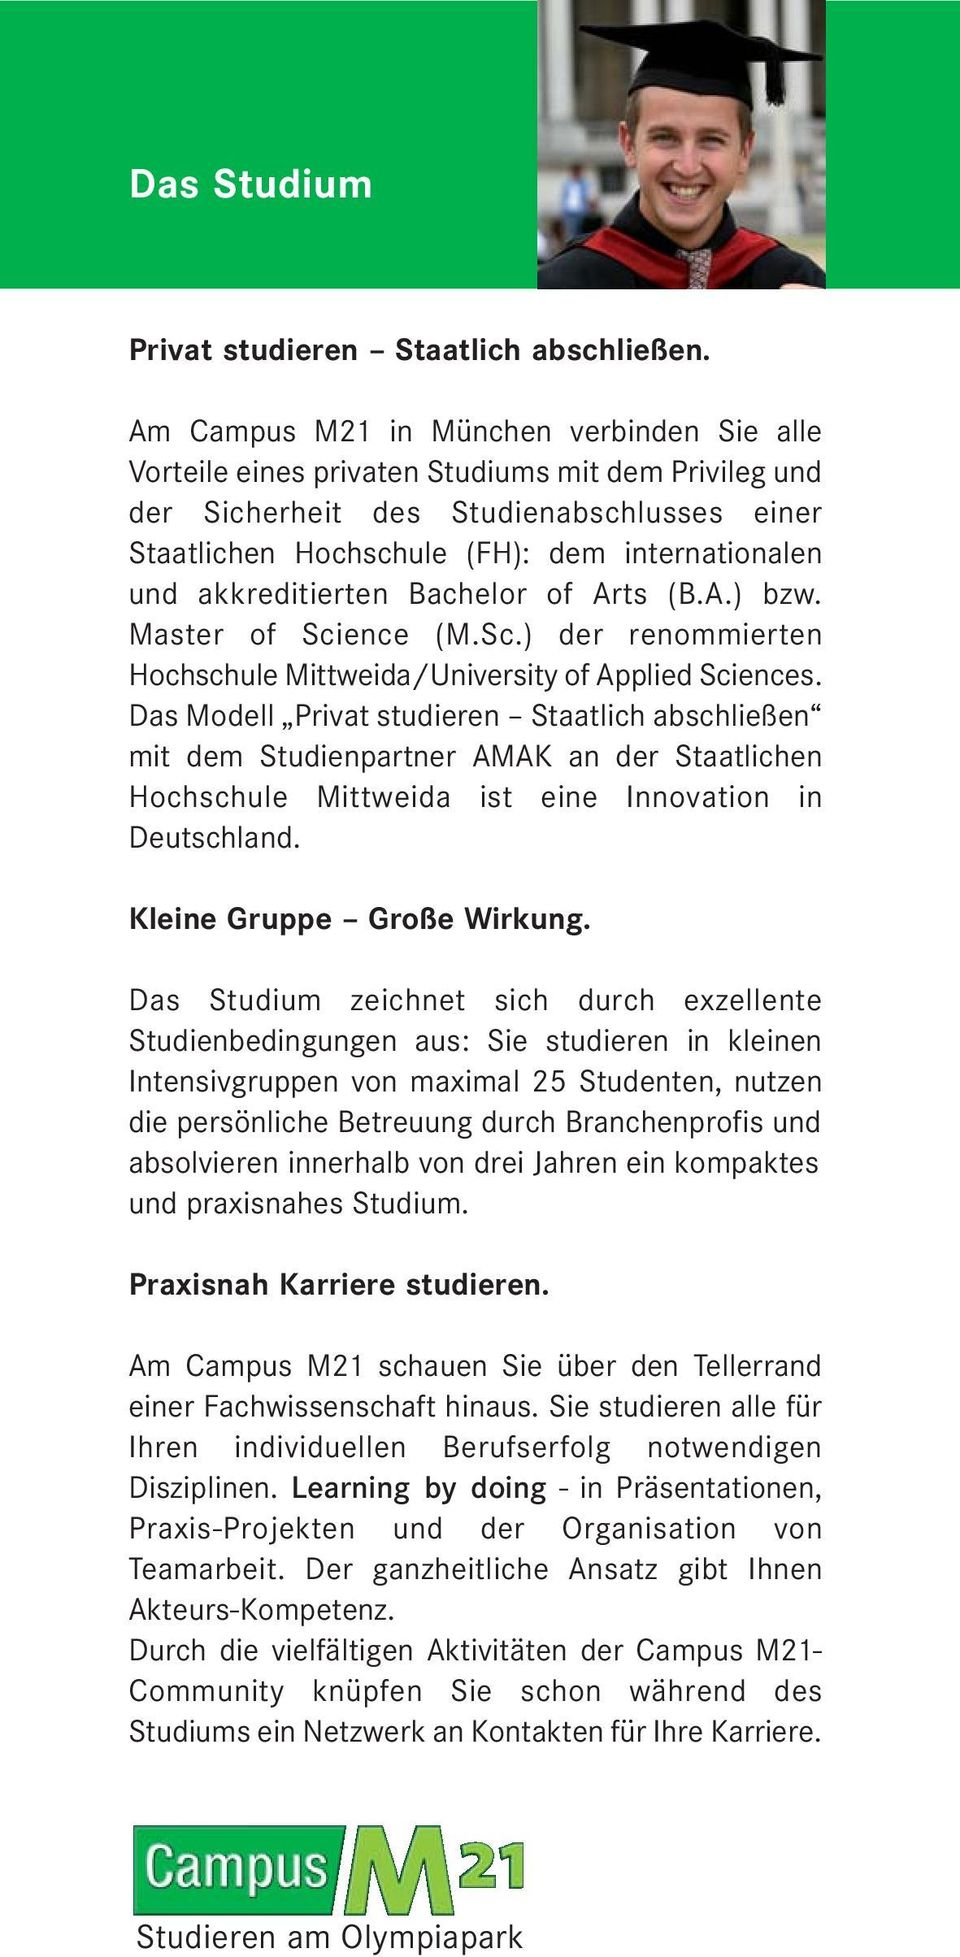 akkreditierten Bachelor of Arts (B.A.) bzw. Master of Science (M.Sc.) der renommierten Hochschule Mittweida/University of Applied Sciences.